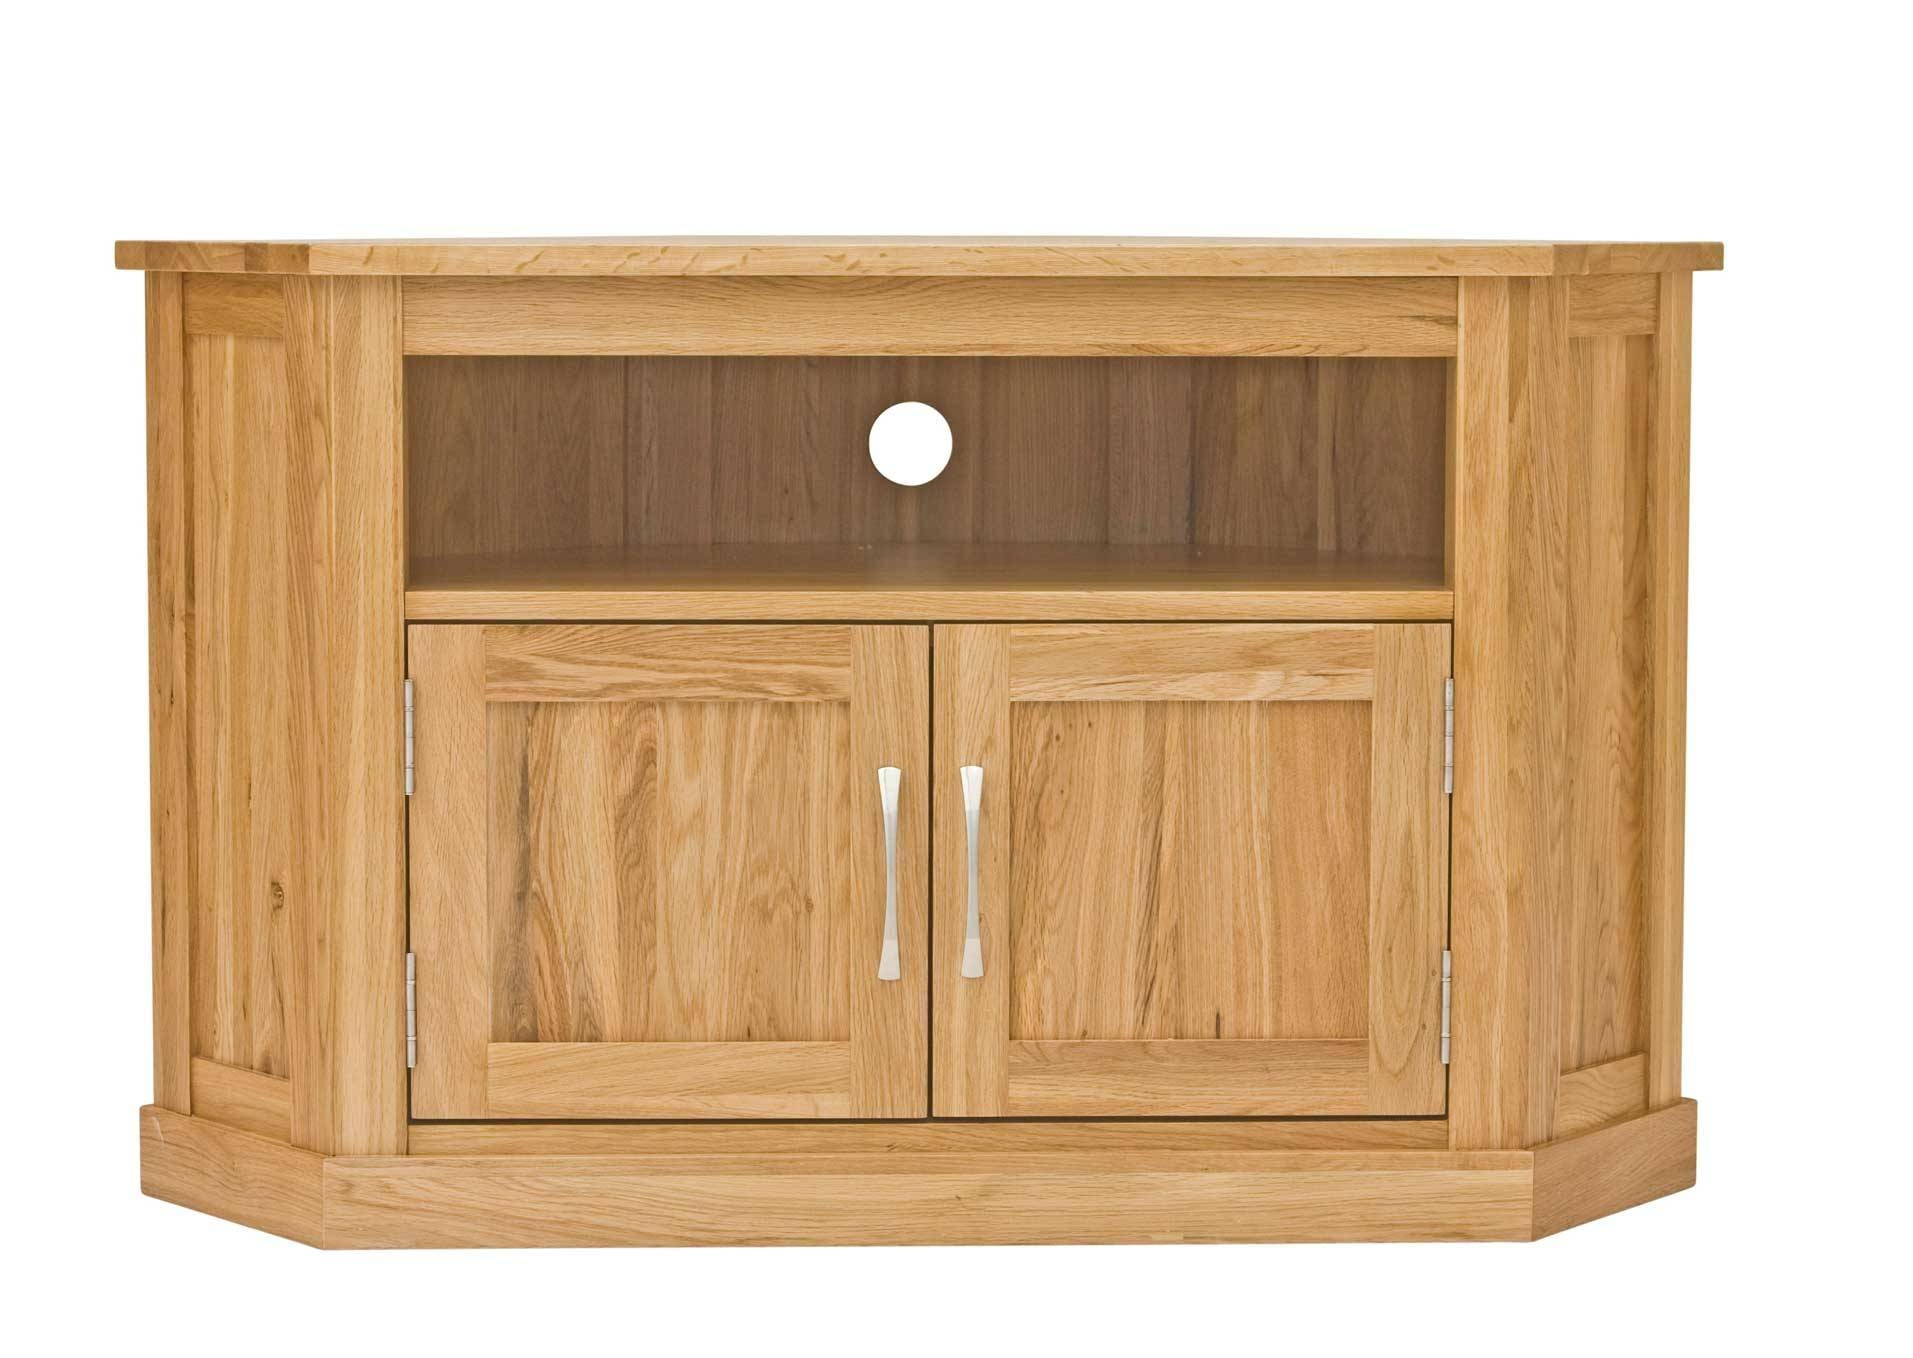 Classic Oak Corner Television Cabinet | Hampshire Furniture in Small Oak Corner Tv Stands (Image 2 of 15)